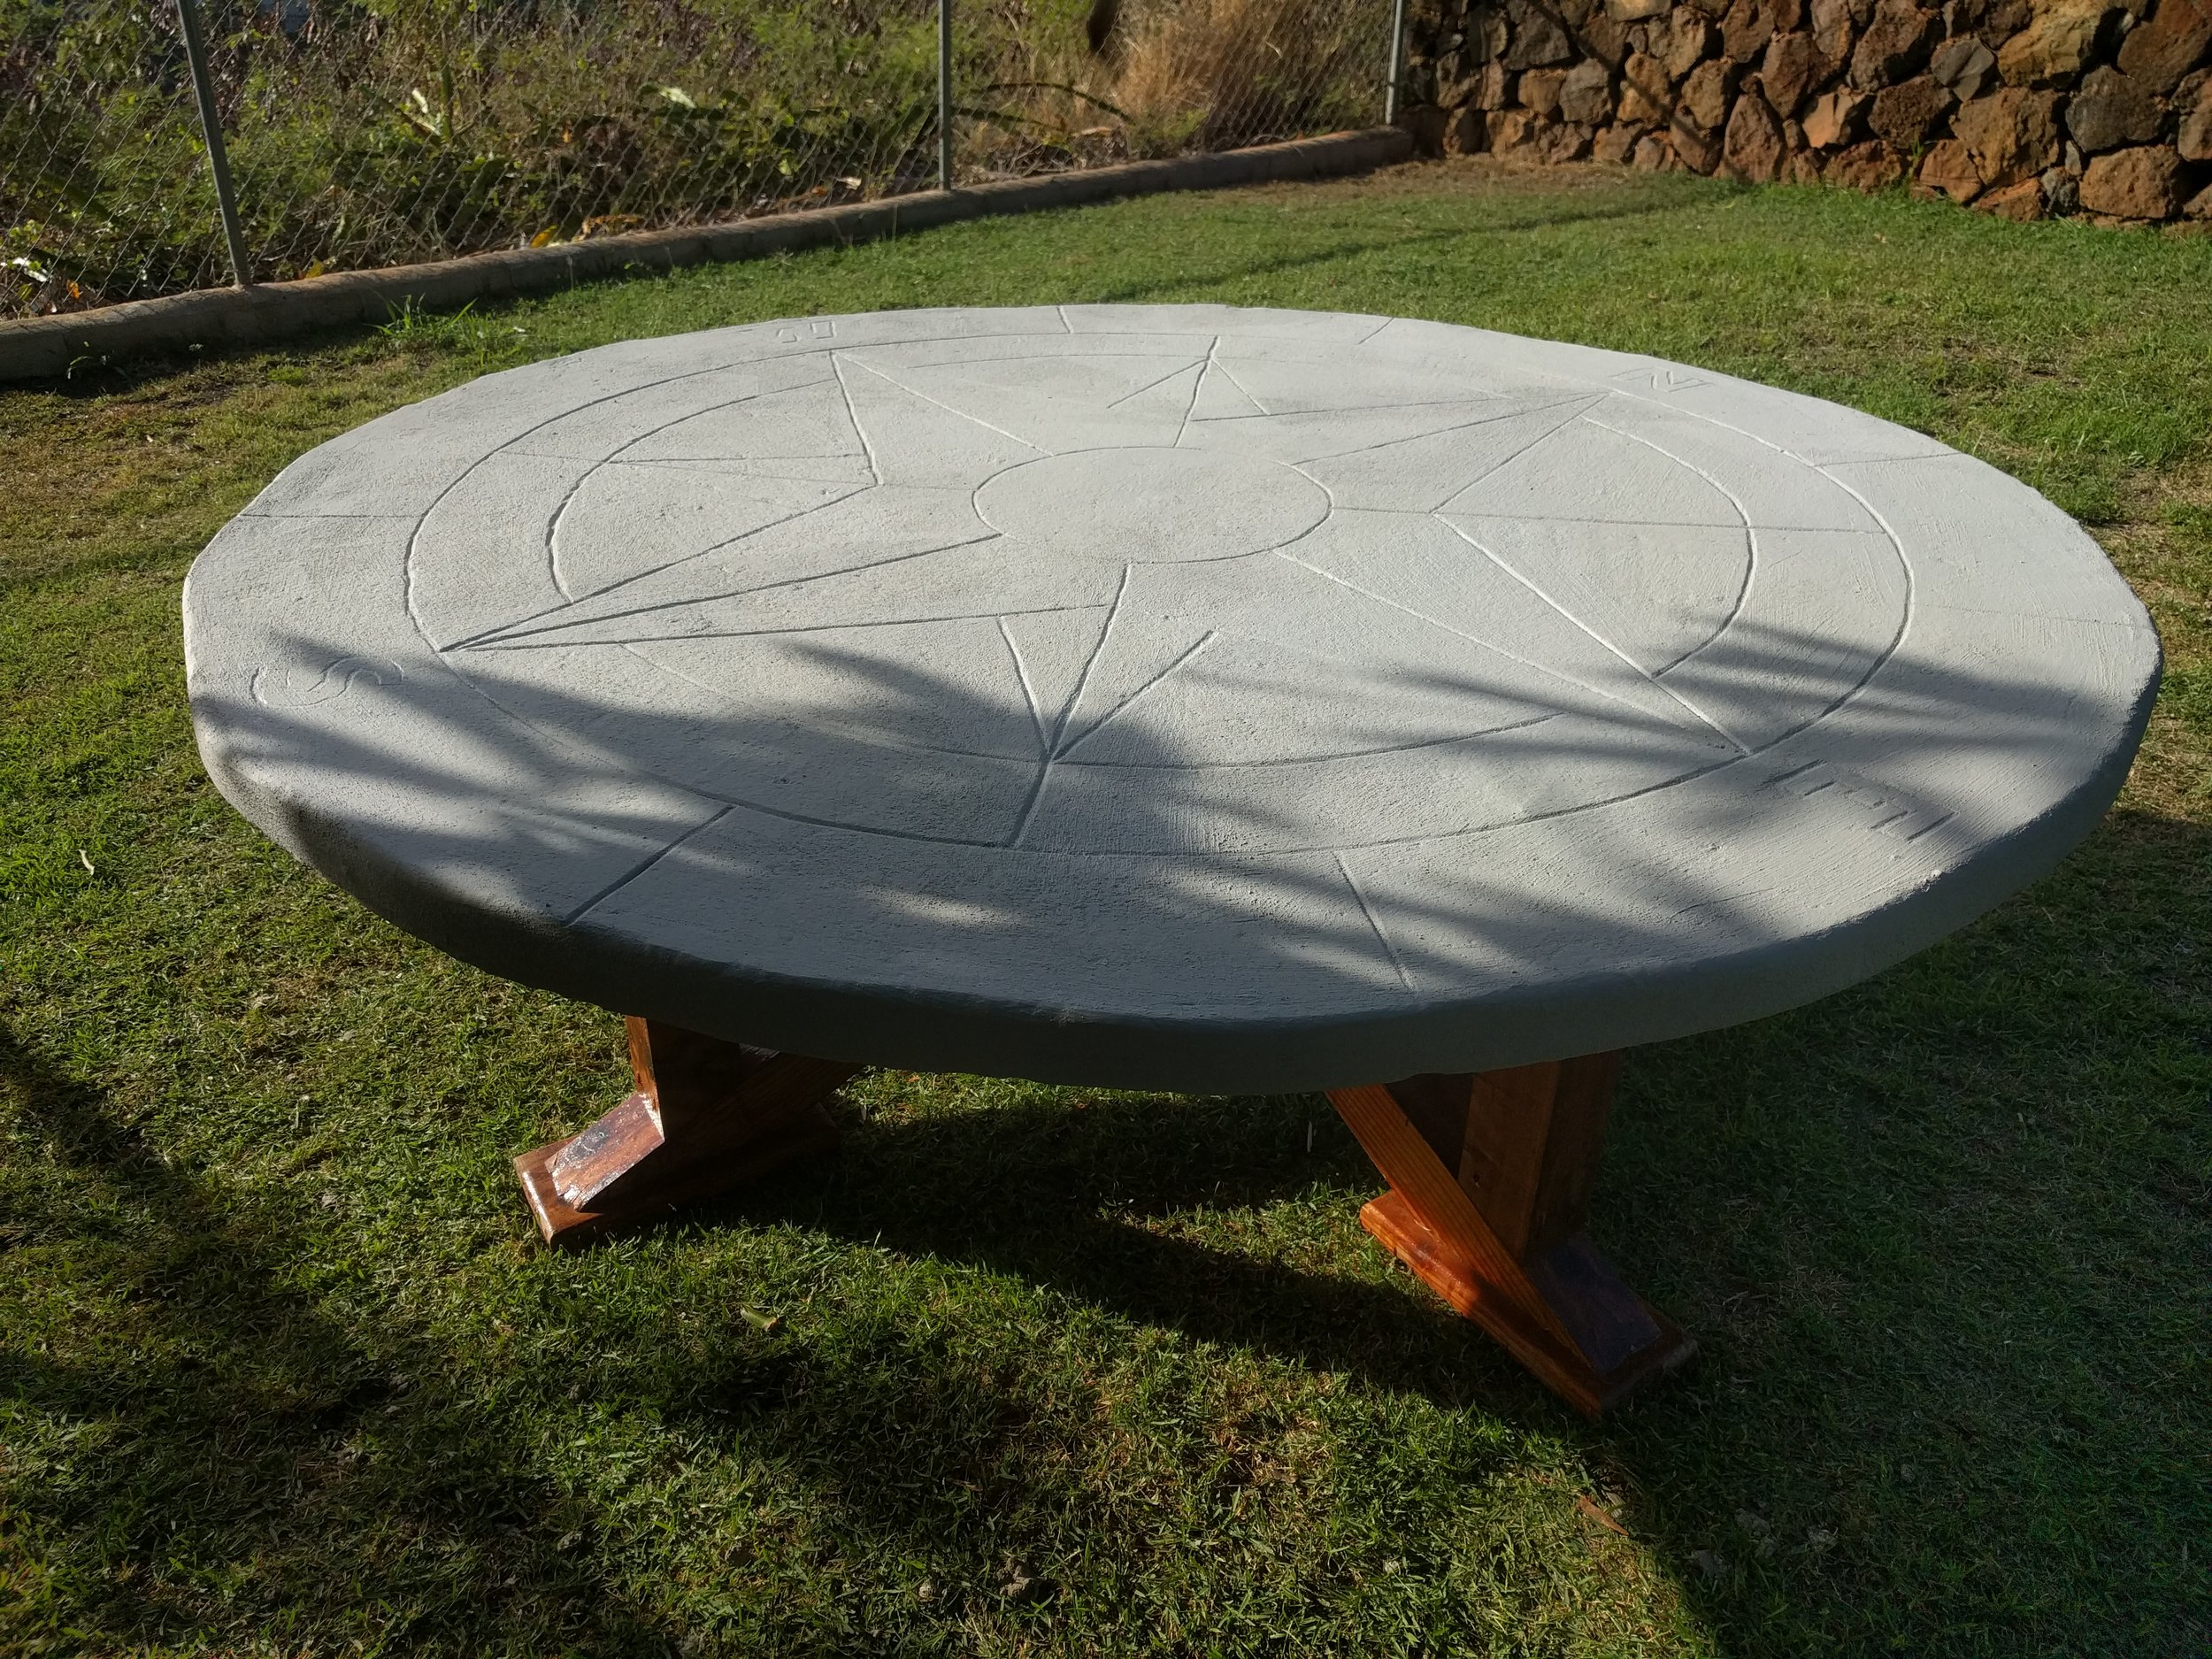 Cement Table DIY - How to build an 800 pound table